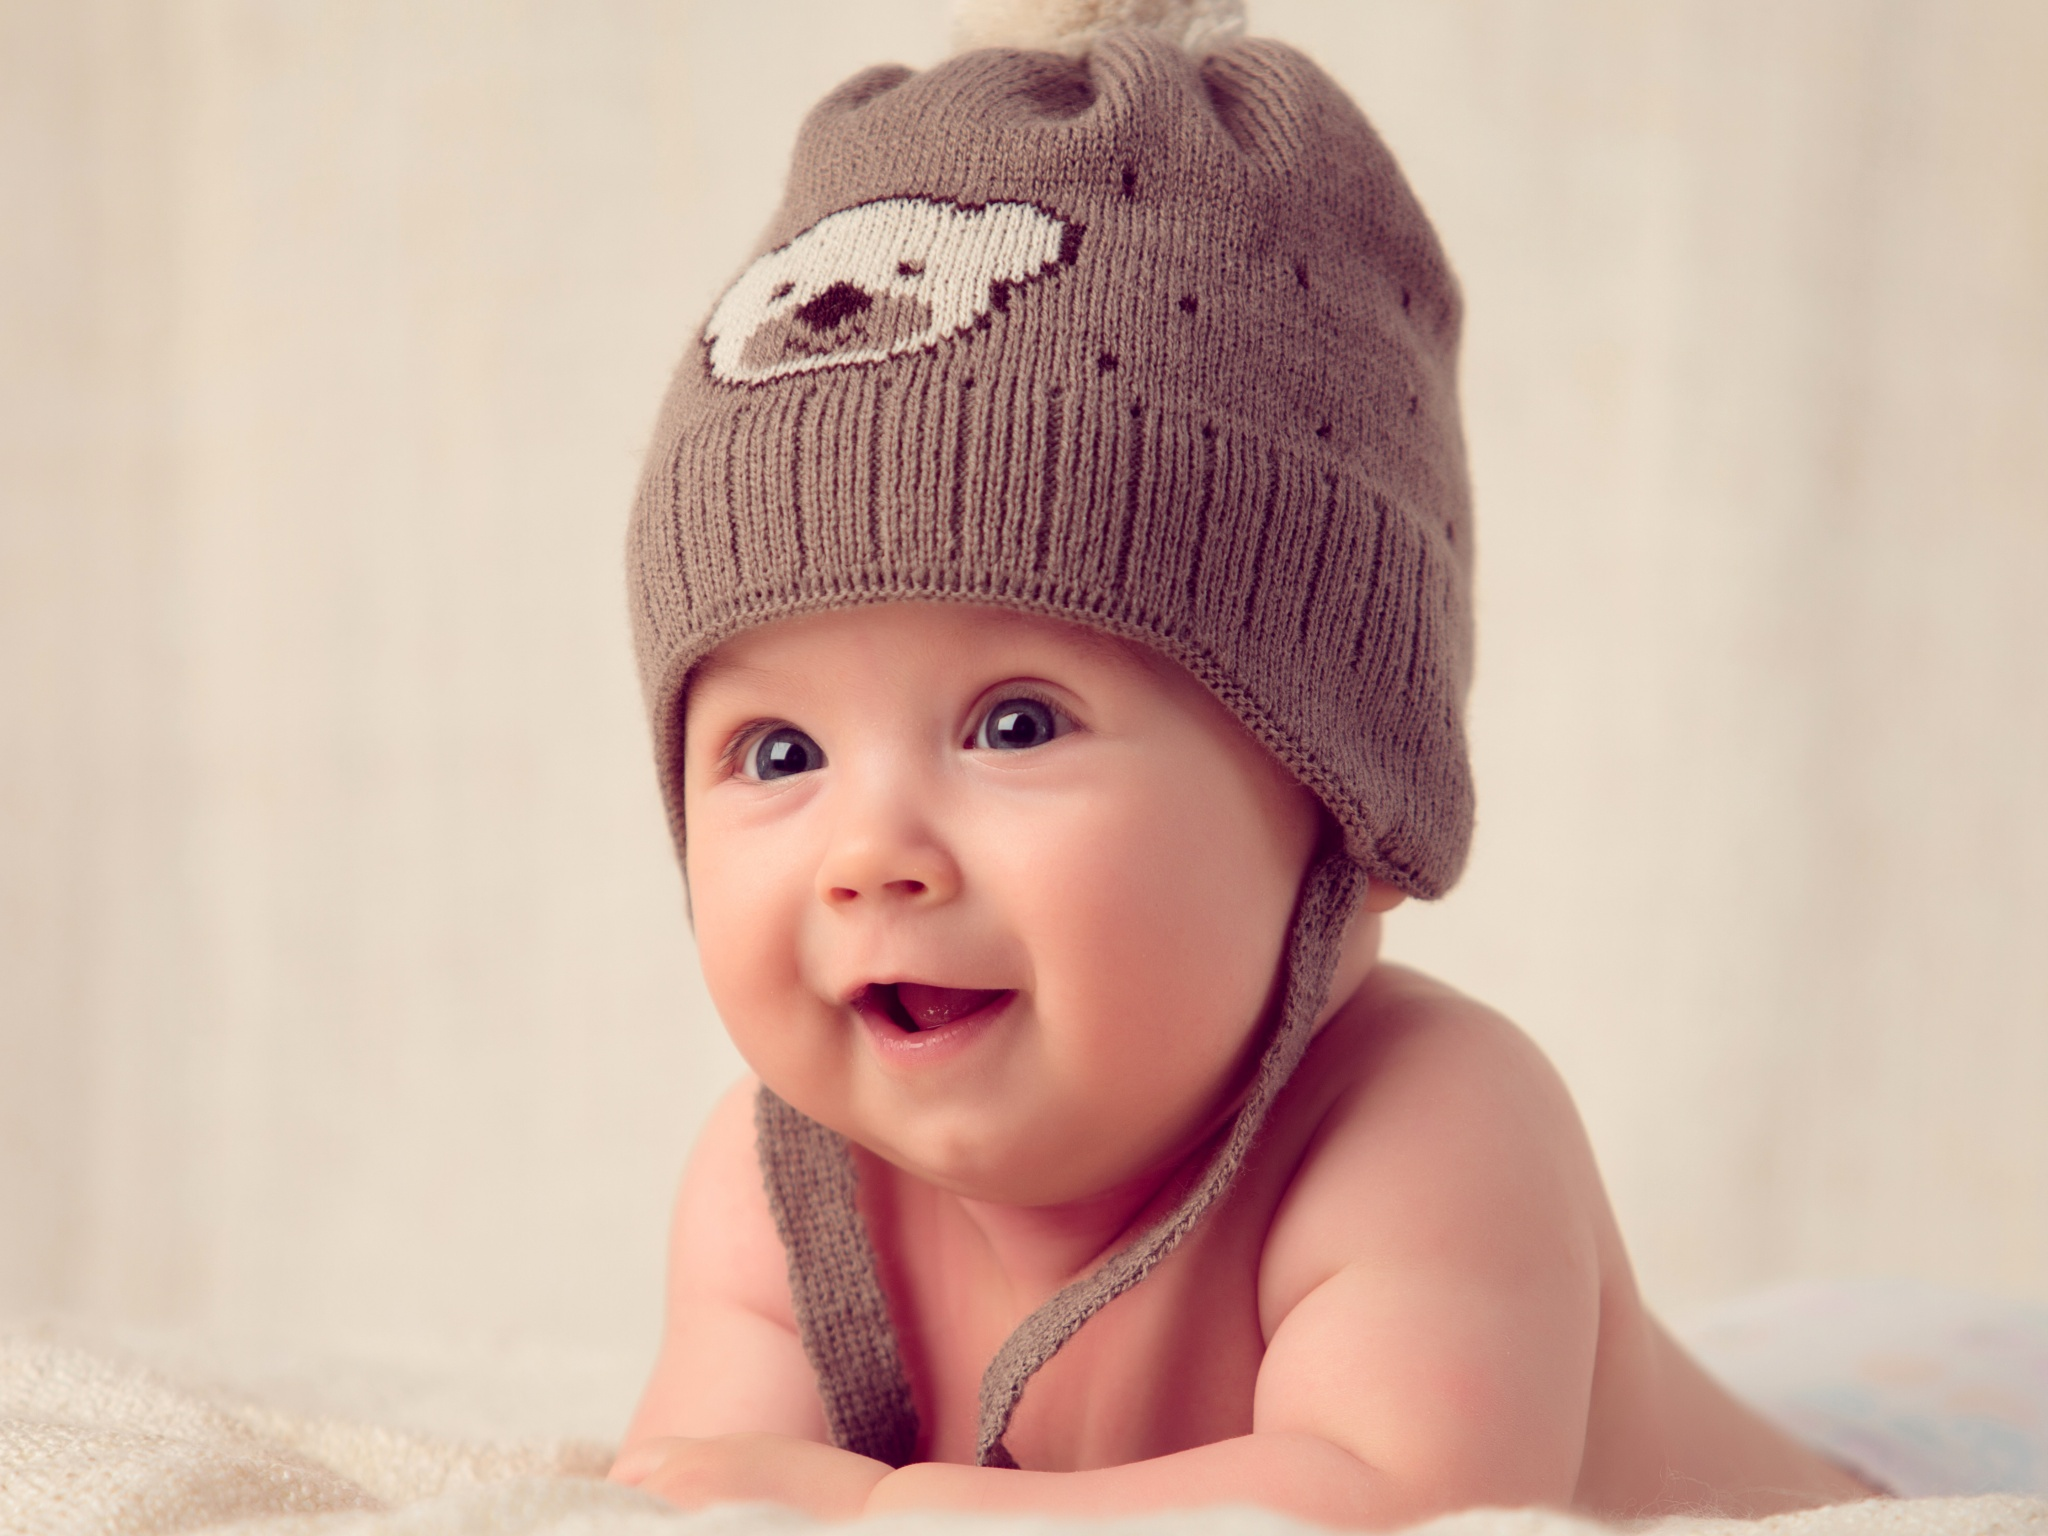 Cute Boy 4k Wallpaper Toddler Adorable Smile 5k 8k Cute 1764